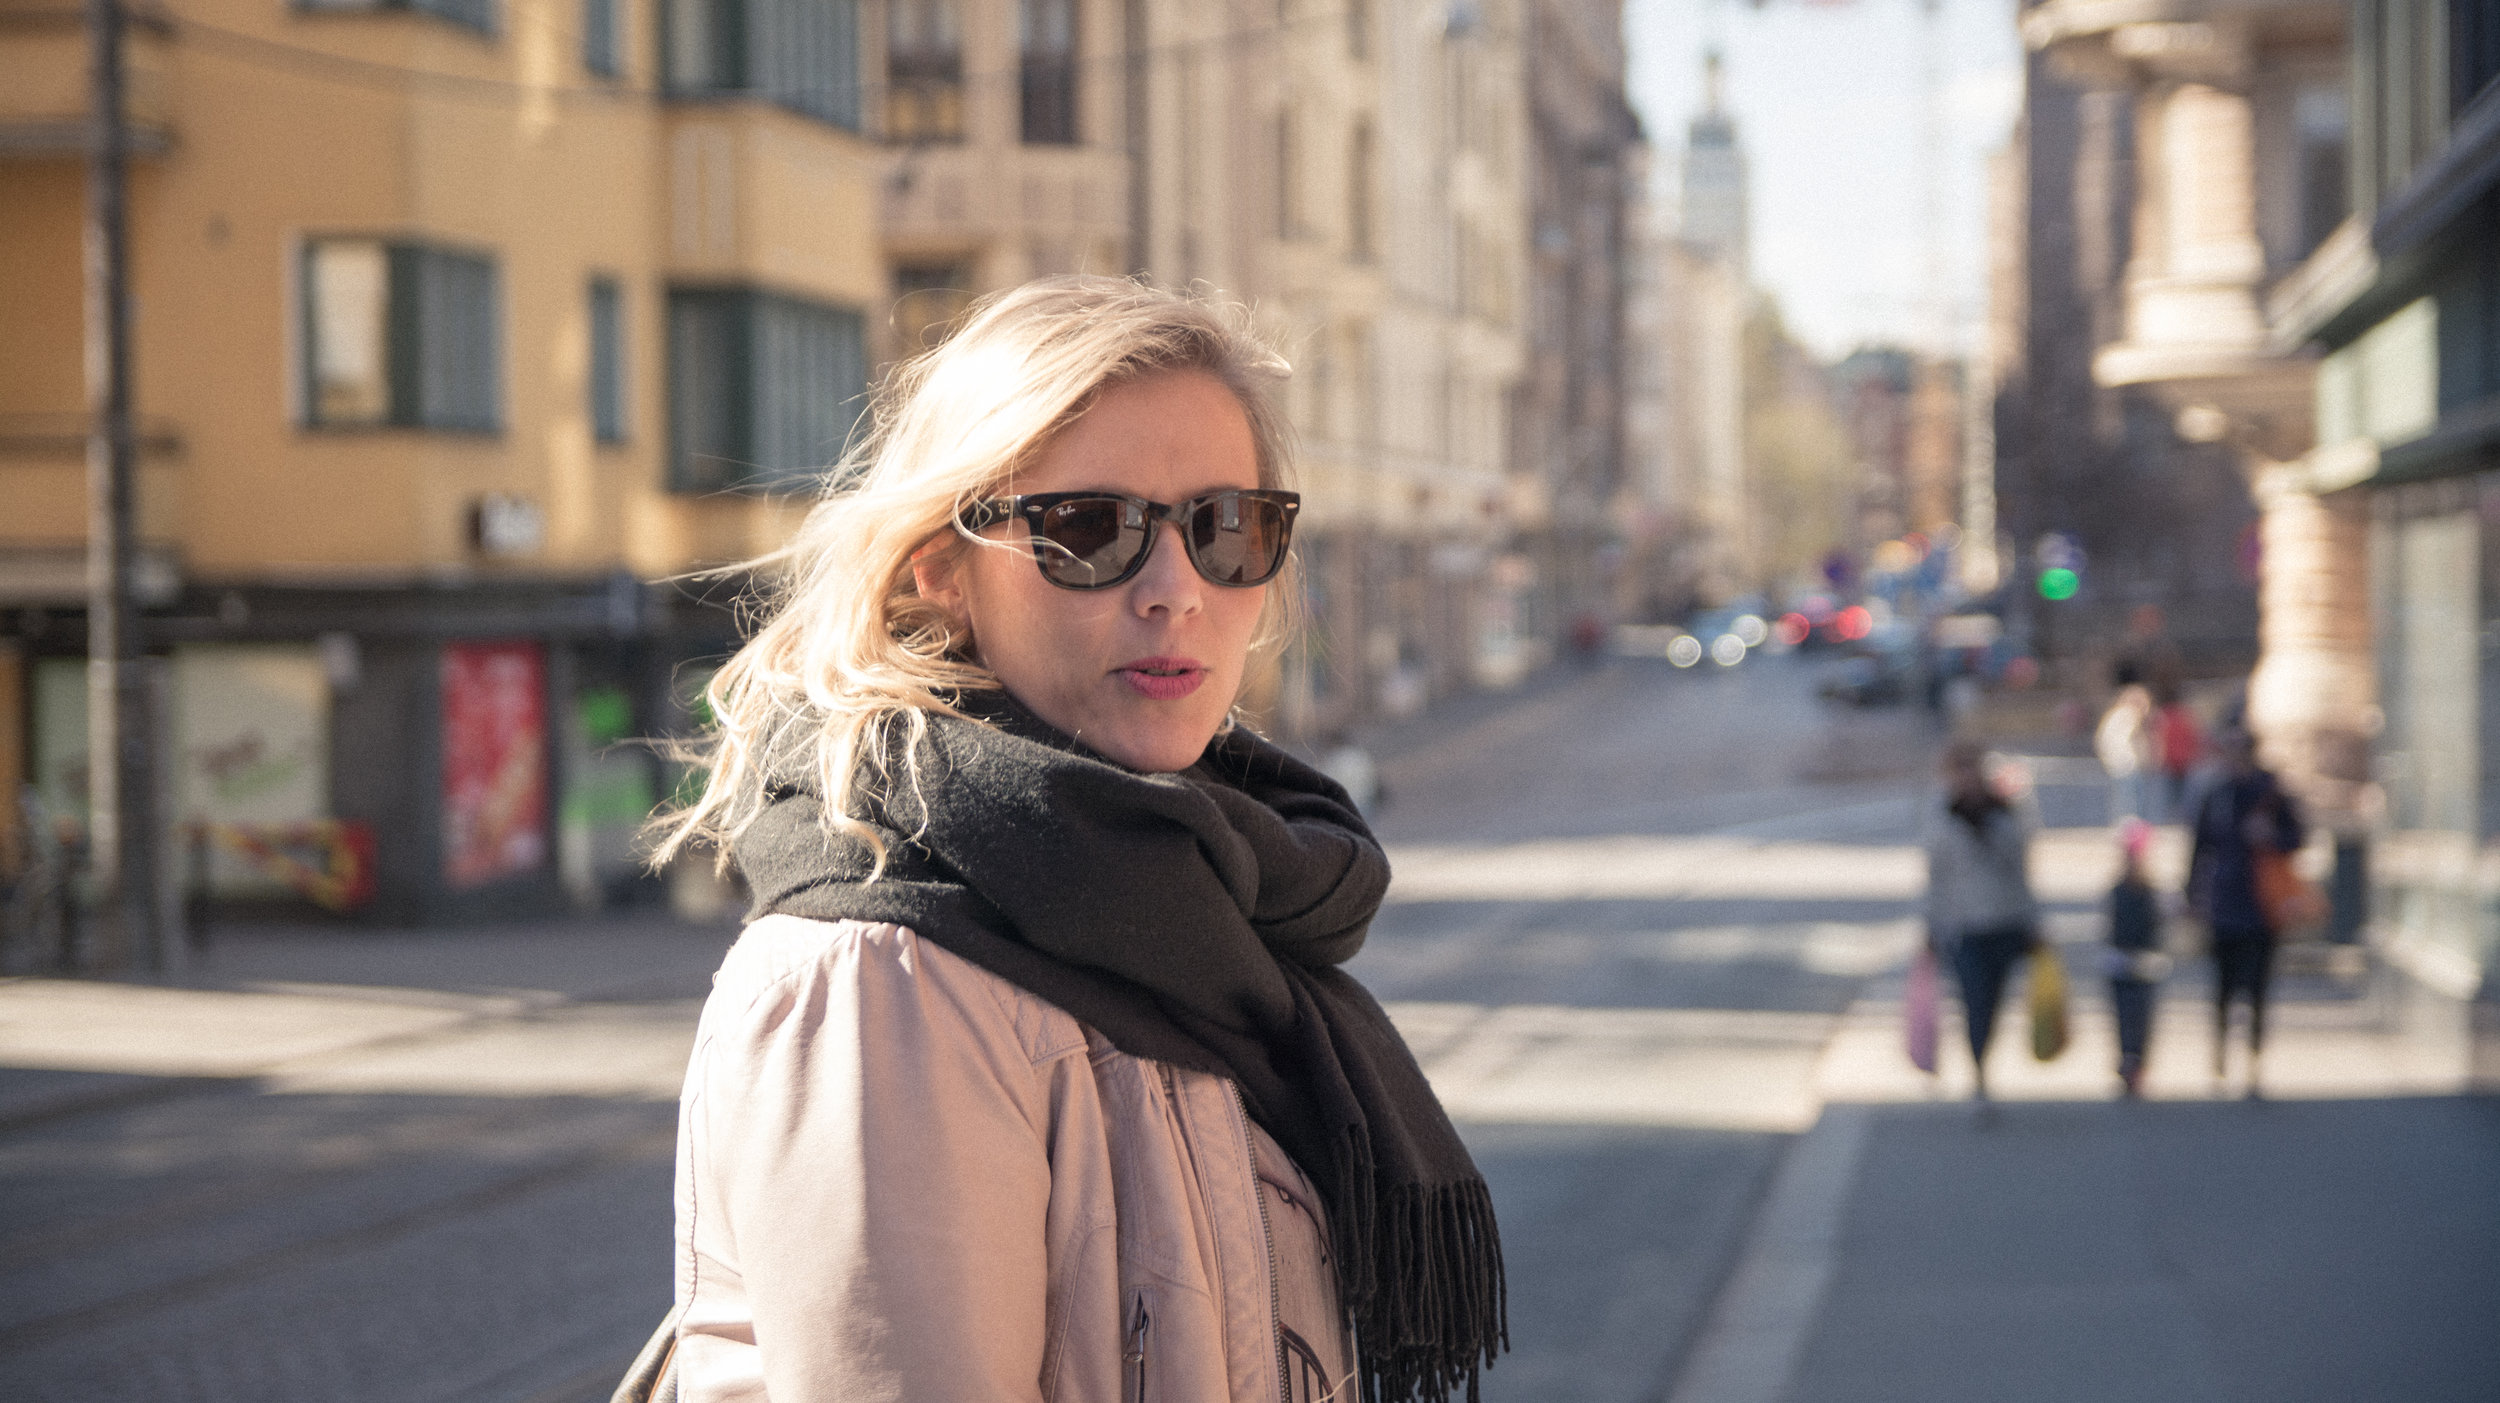 Laura looking stylish in downtown Helsinki